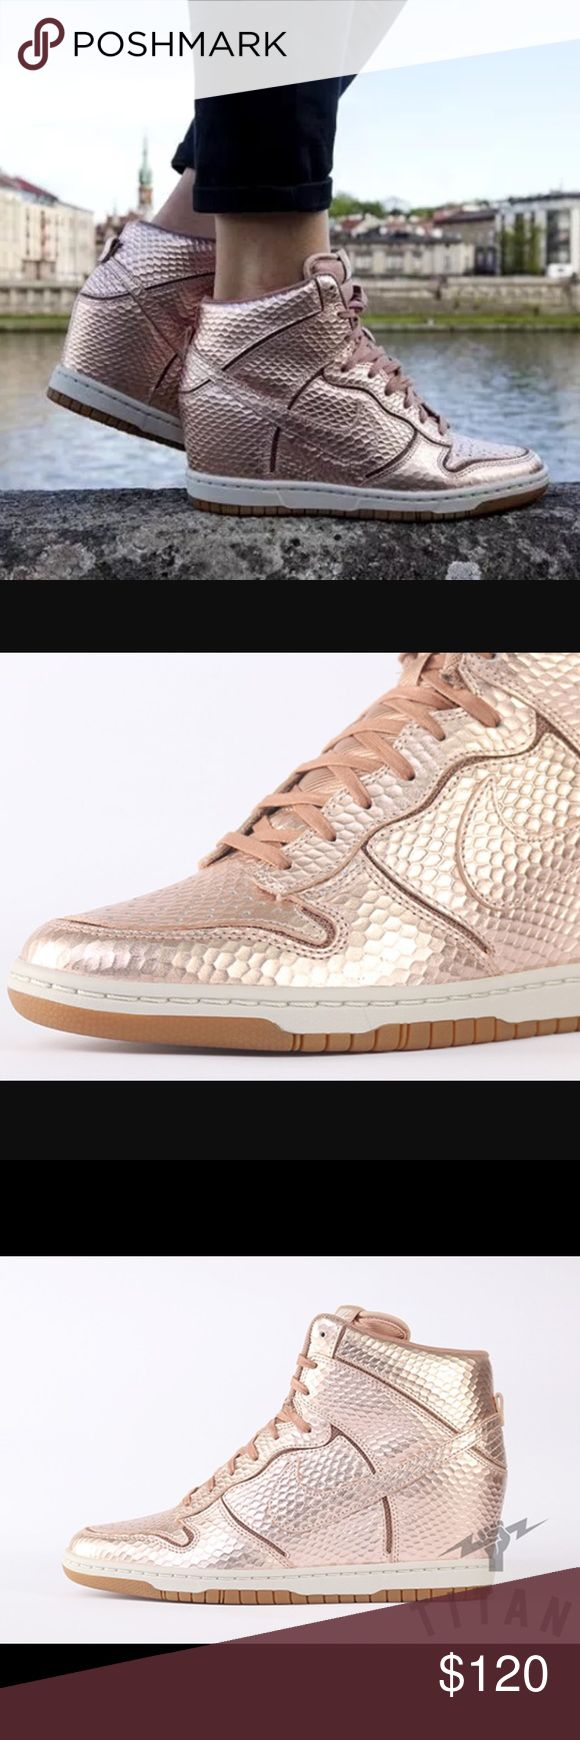 """Nike rose gold dunk sky hi wedge tennis shoes Brand new without box. Size 7. Authentic Nikes in a metallic rose gold embossed snake print look. 2.6"""" hidden wedge inside the shoe. Bloggers favorite and right on trend! Nike rose gold dunk sky hi wedge tennis shoes. Nike Shoes Athletic Shoes"""